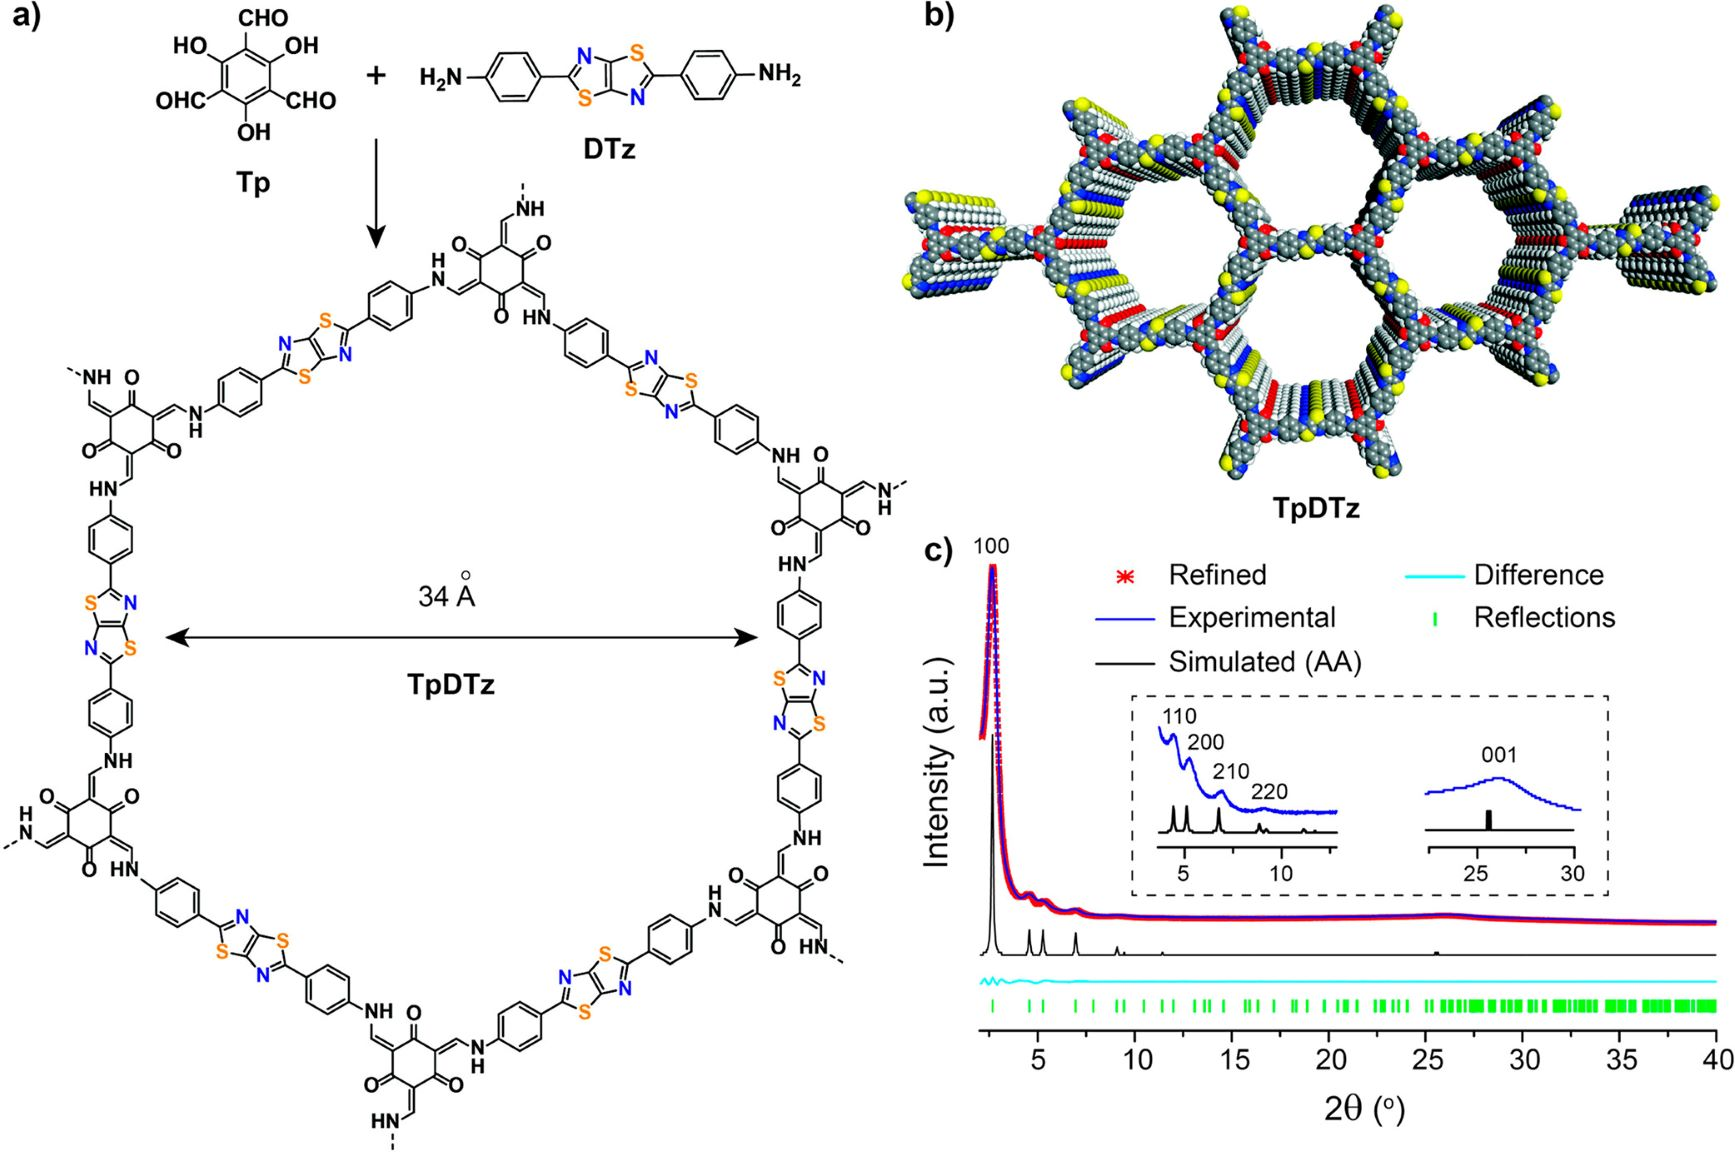 Sustained Solar H2 Evolution from a Thiazolo[5,4-d]thiazole-Bridged Covalent Organic Framework and Nickel-Thiolate Cluster in Water